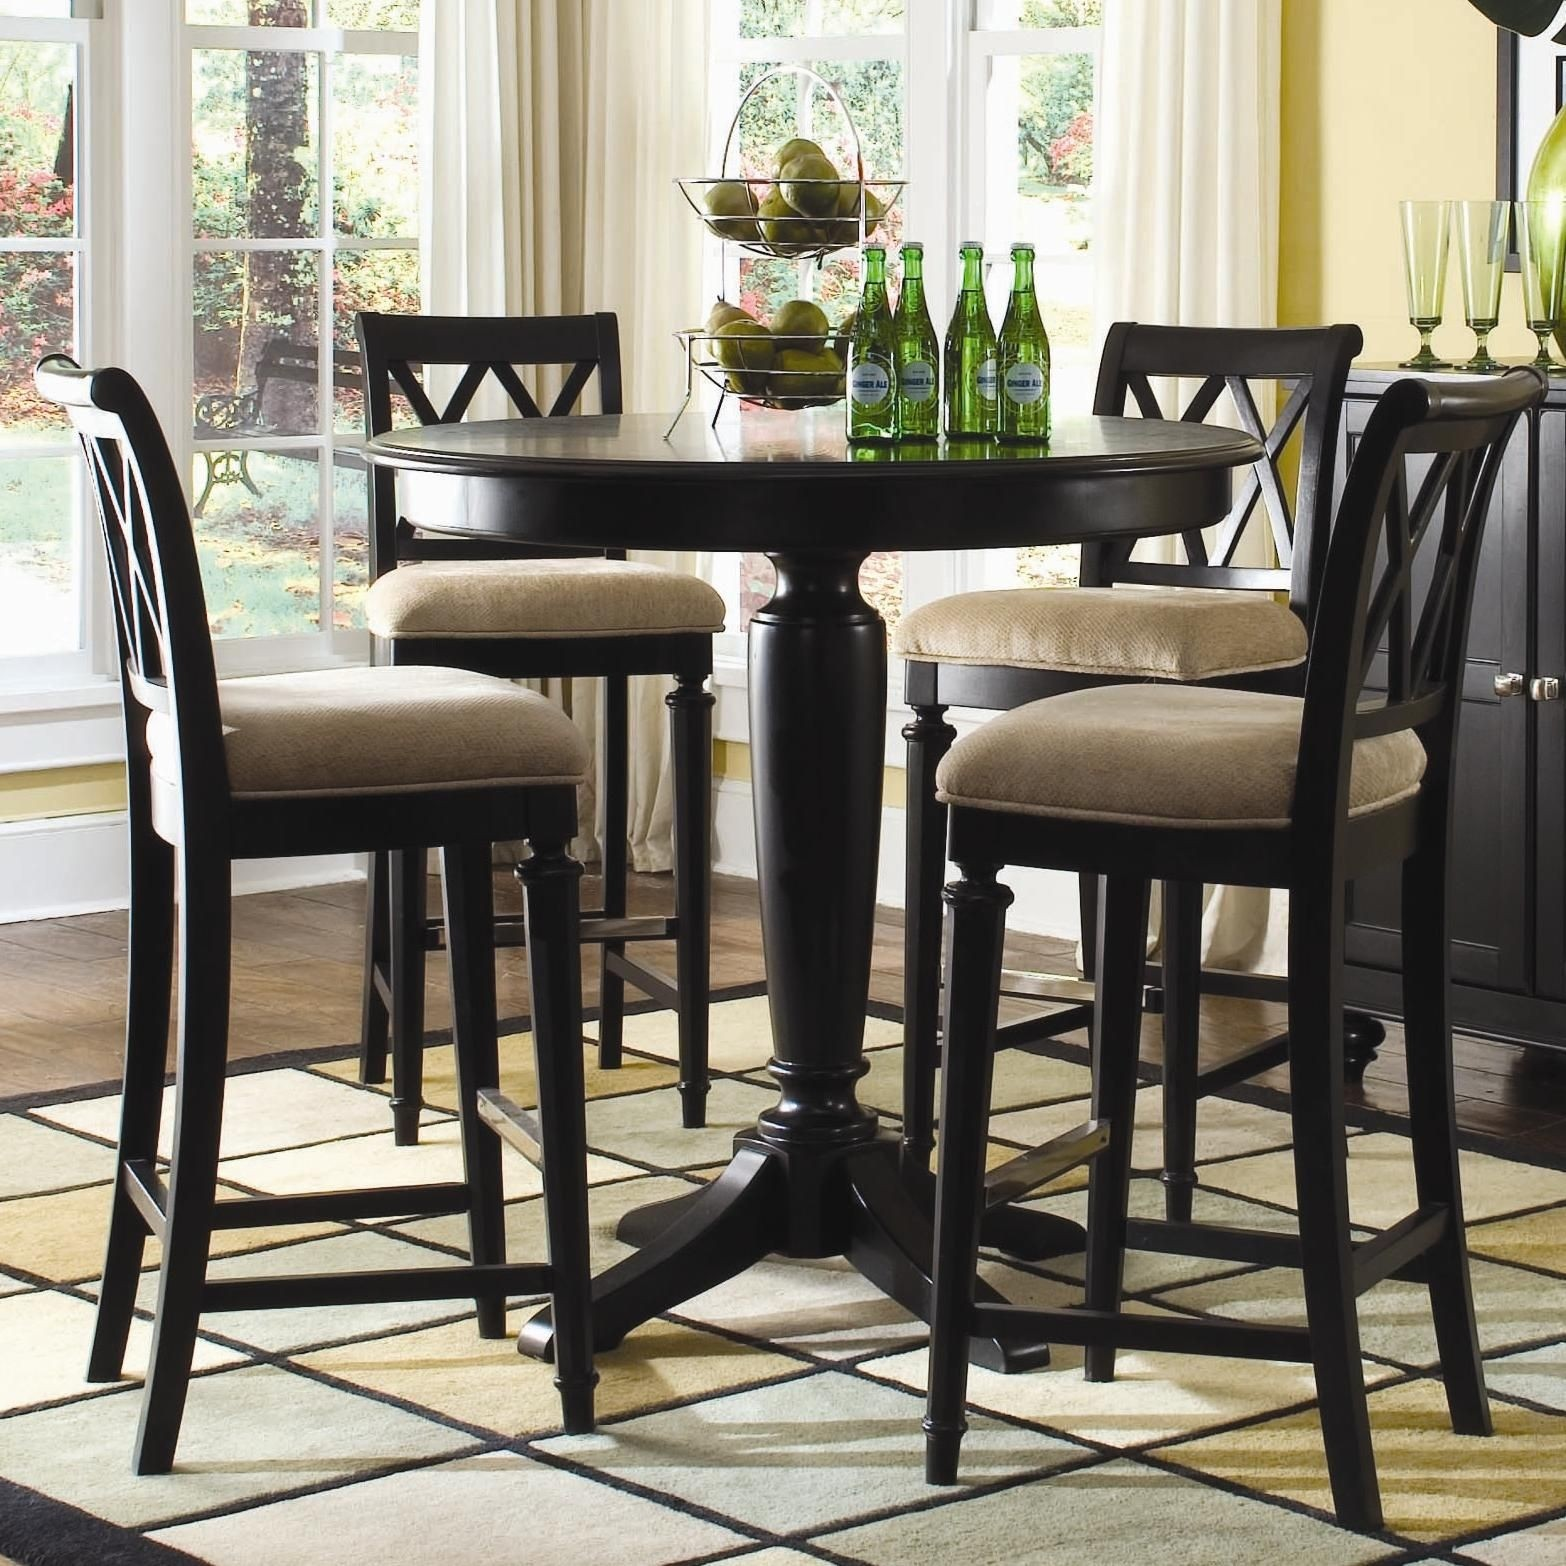 round bar height dining table ideas on foter rh foter com kitchen table with matching bar stools small kitchen table with bar stools